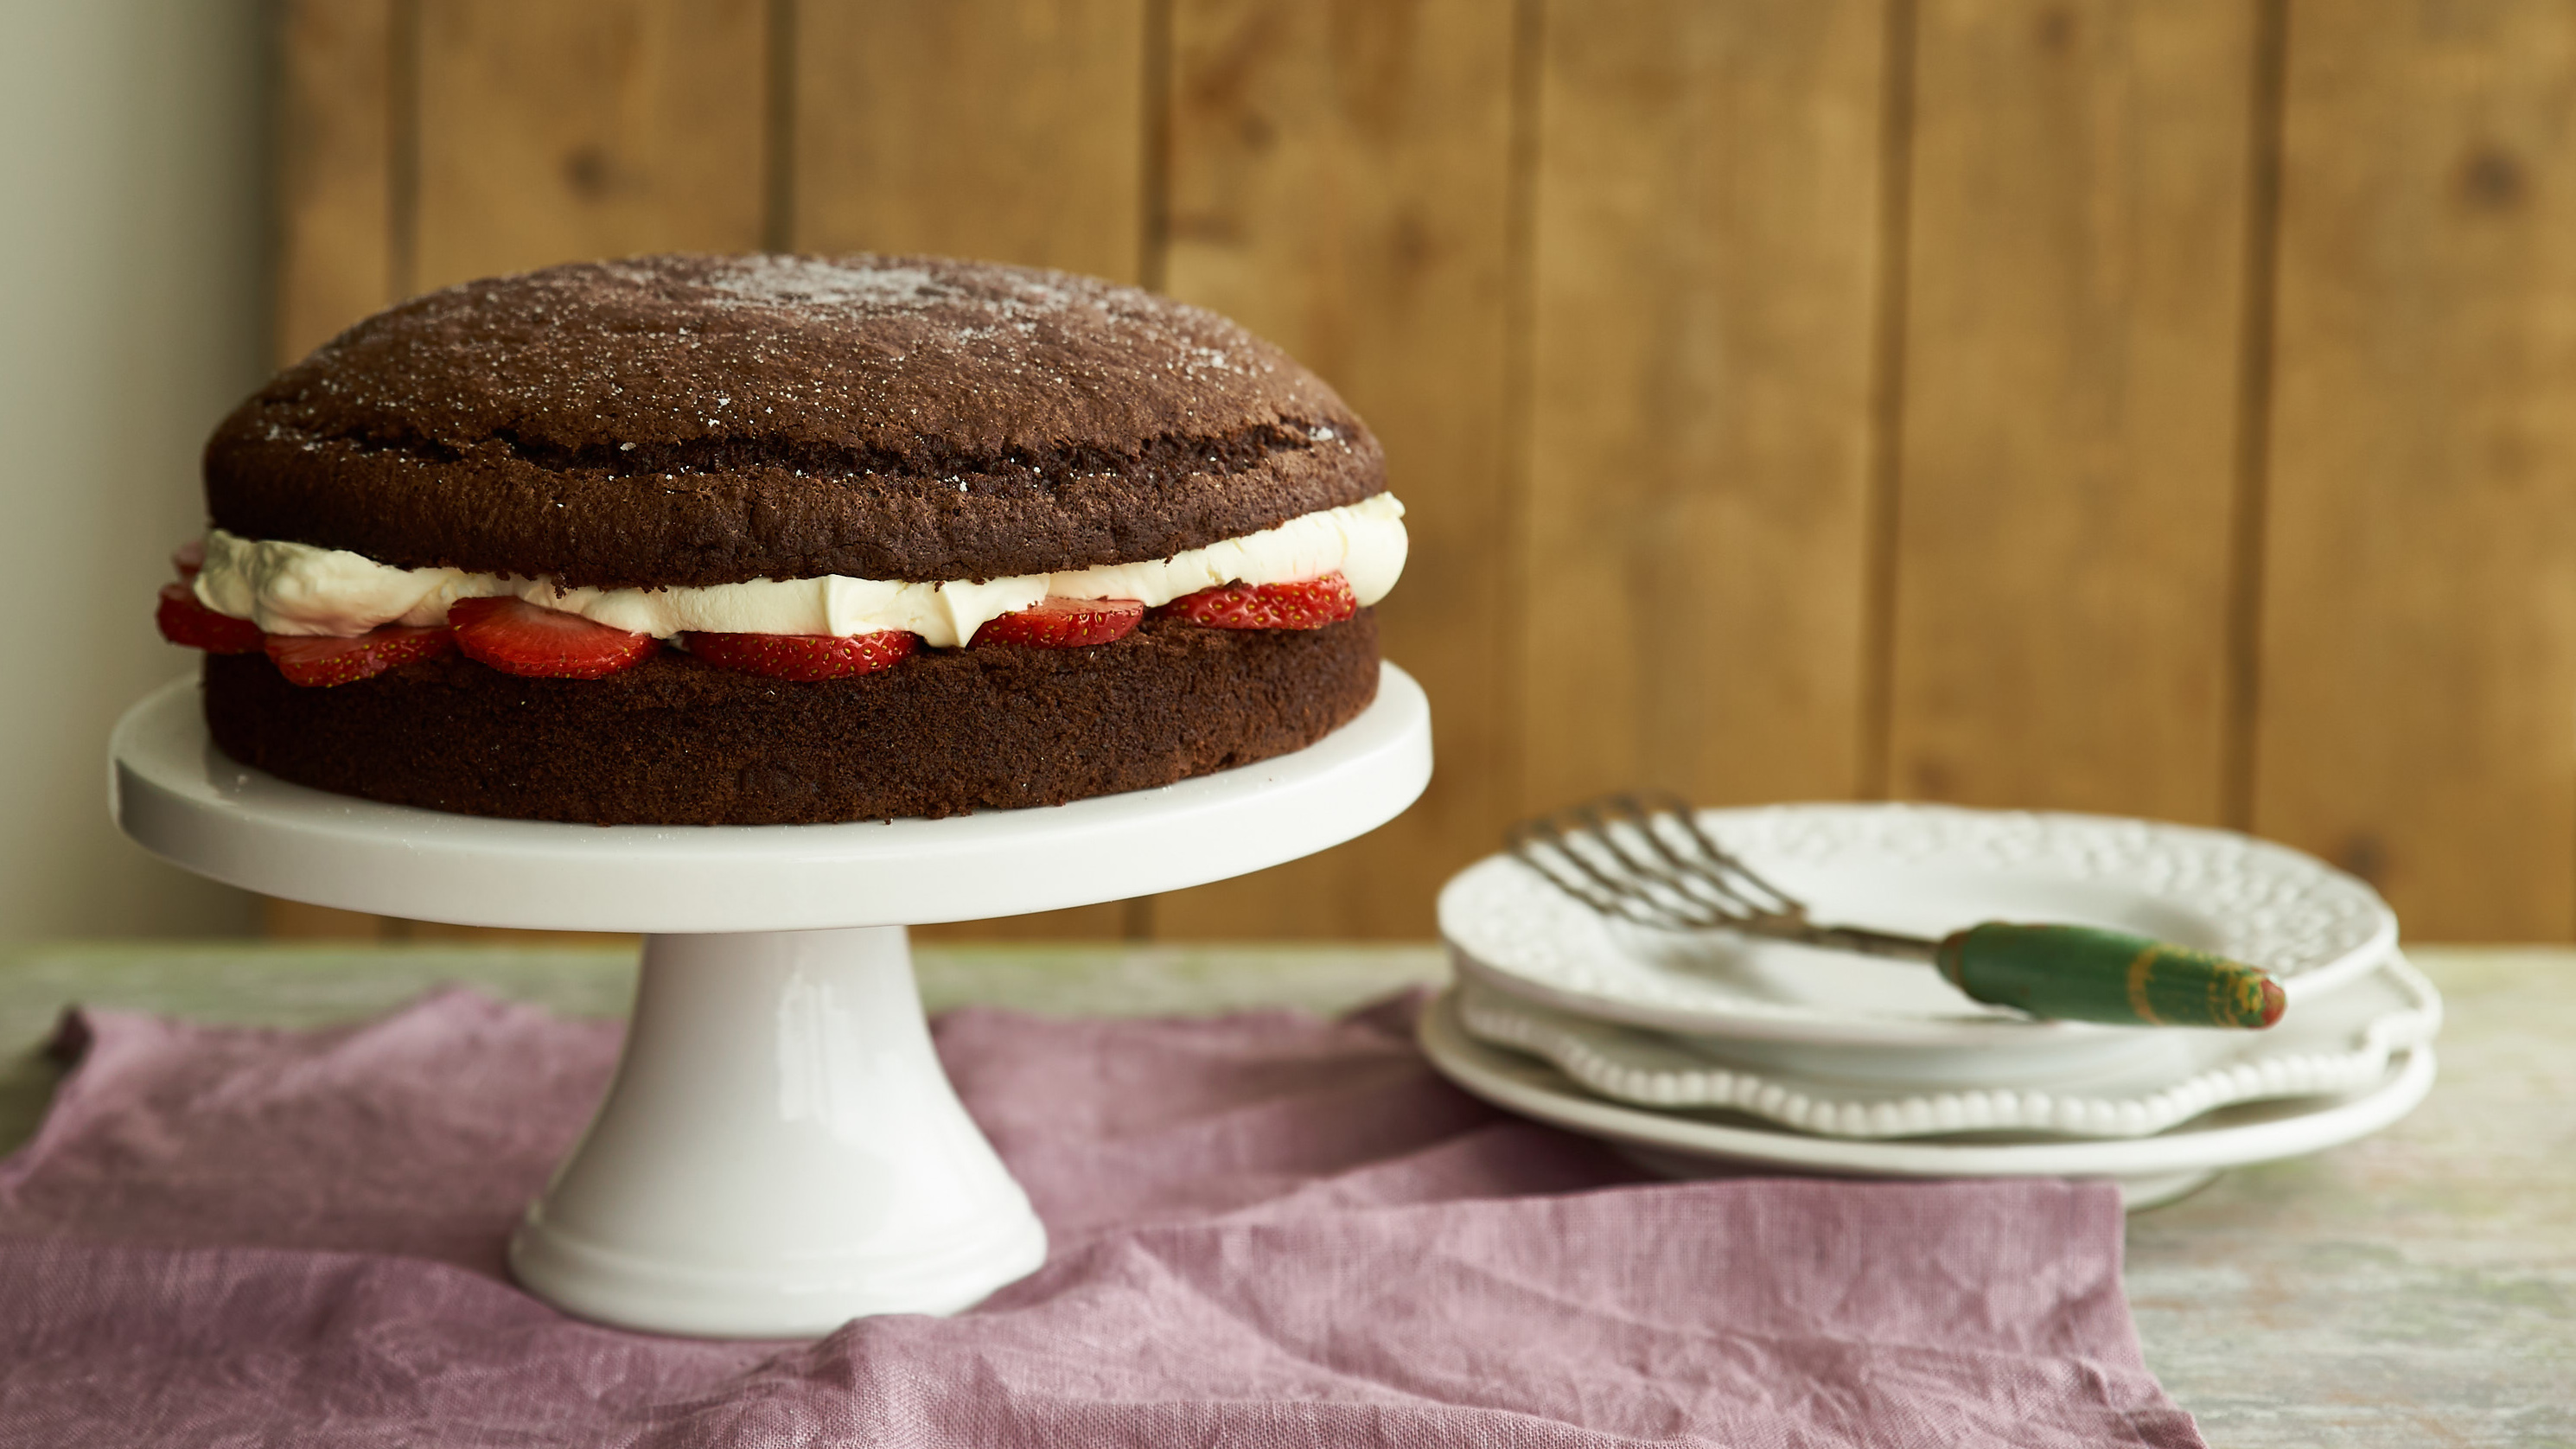 Egg free sponge cake recipe bbc food forumfinder Image collections